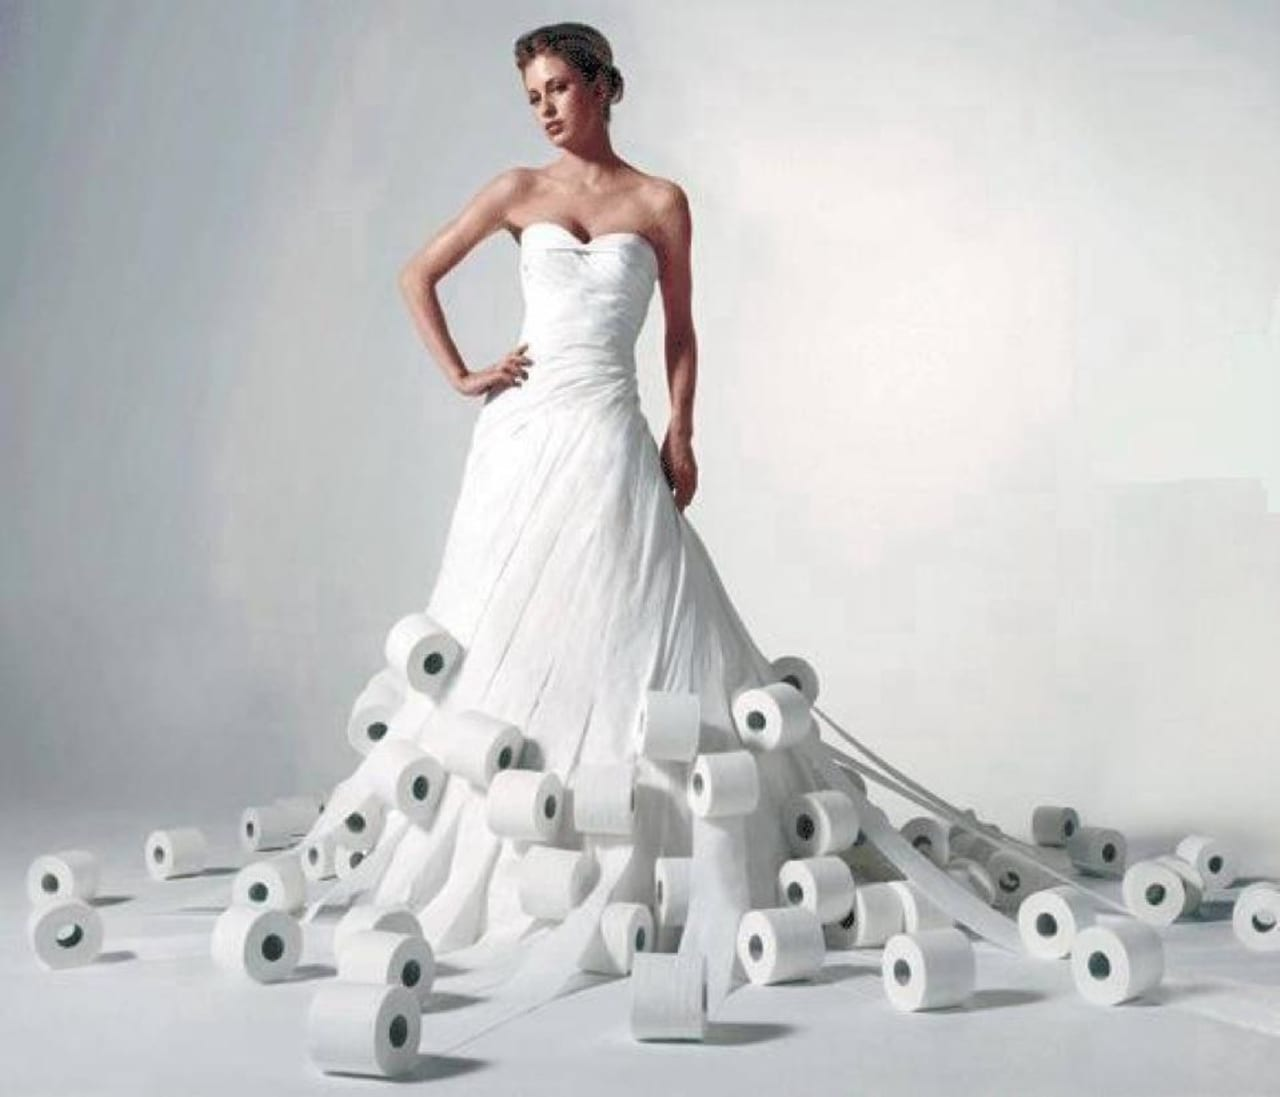 A Toilet Paper Wedding Dress Design Contest Now Open For